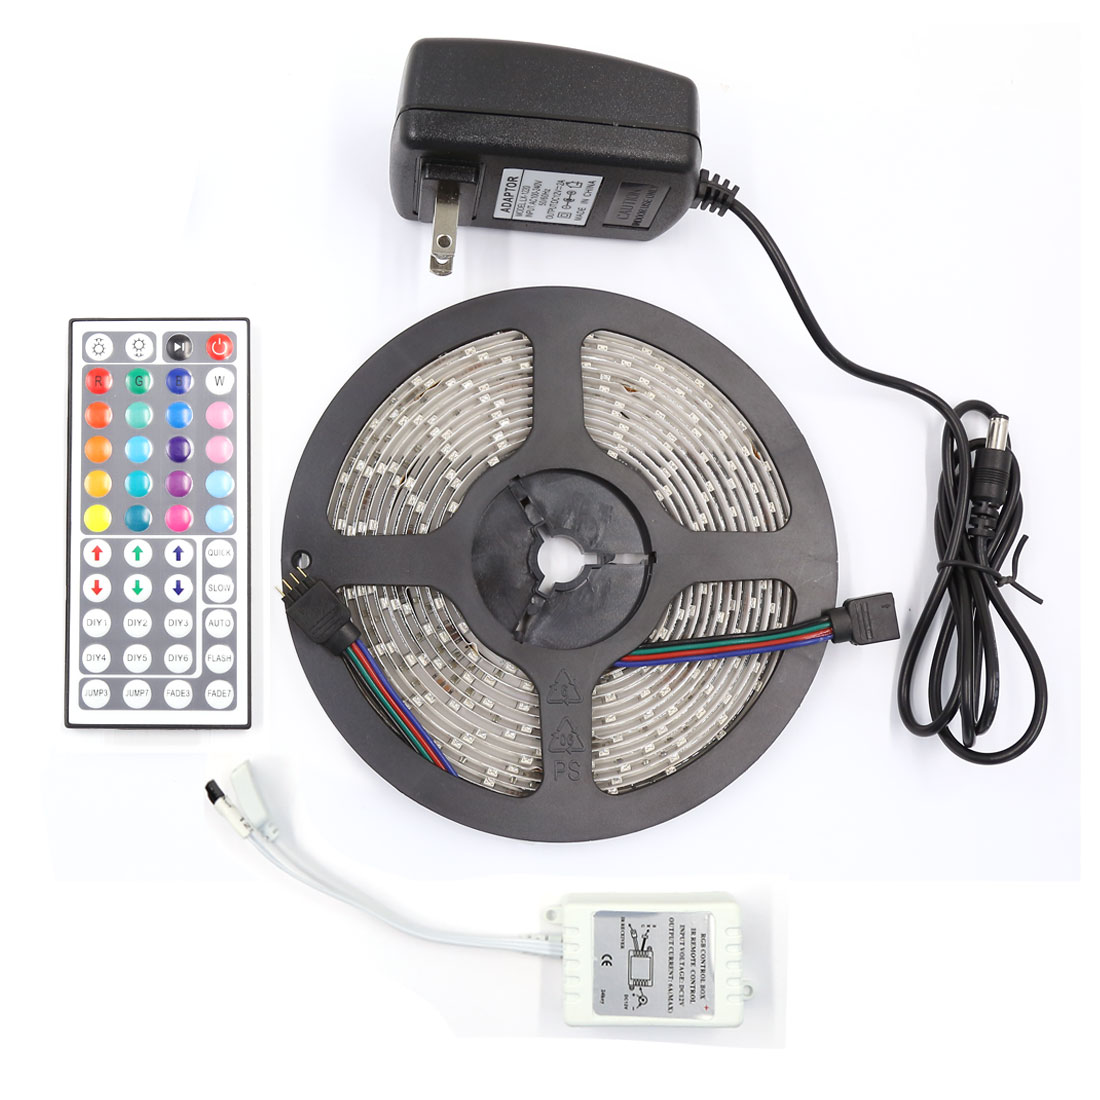 5M RGB 3528 SMD 300 LED Waterproof Strip Light 44 Key Remote AC100-240V US Plug